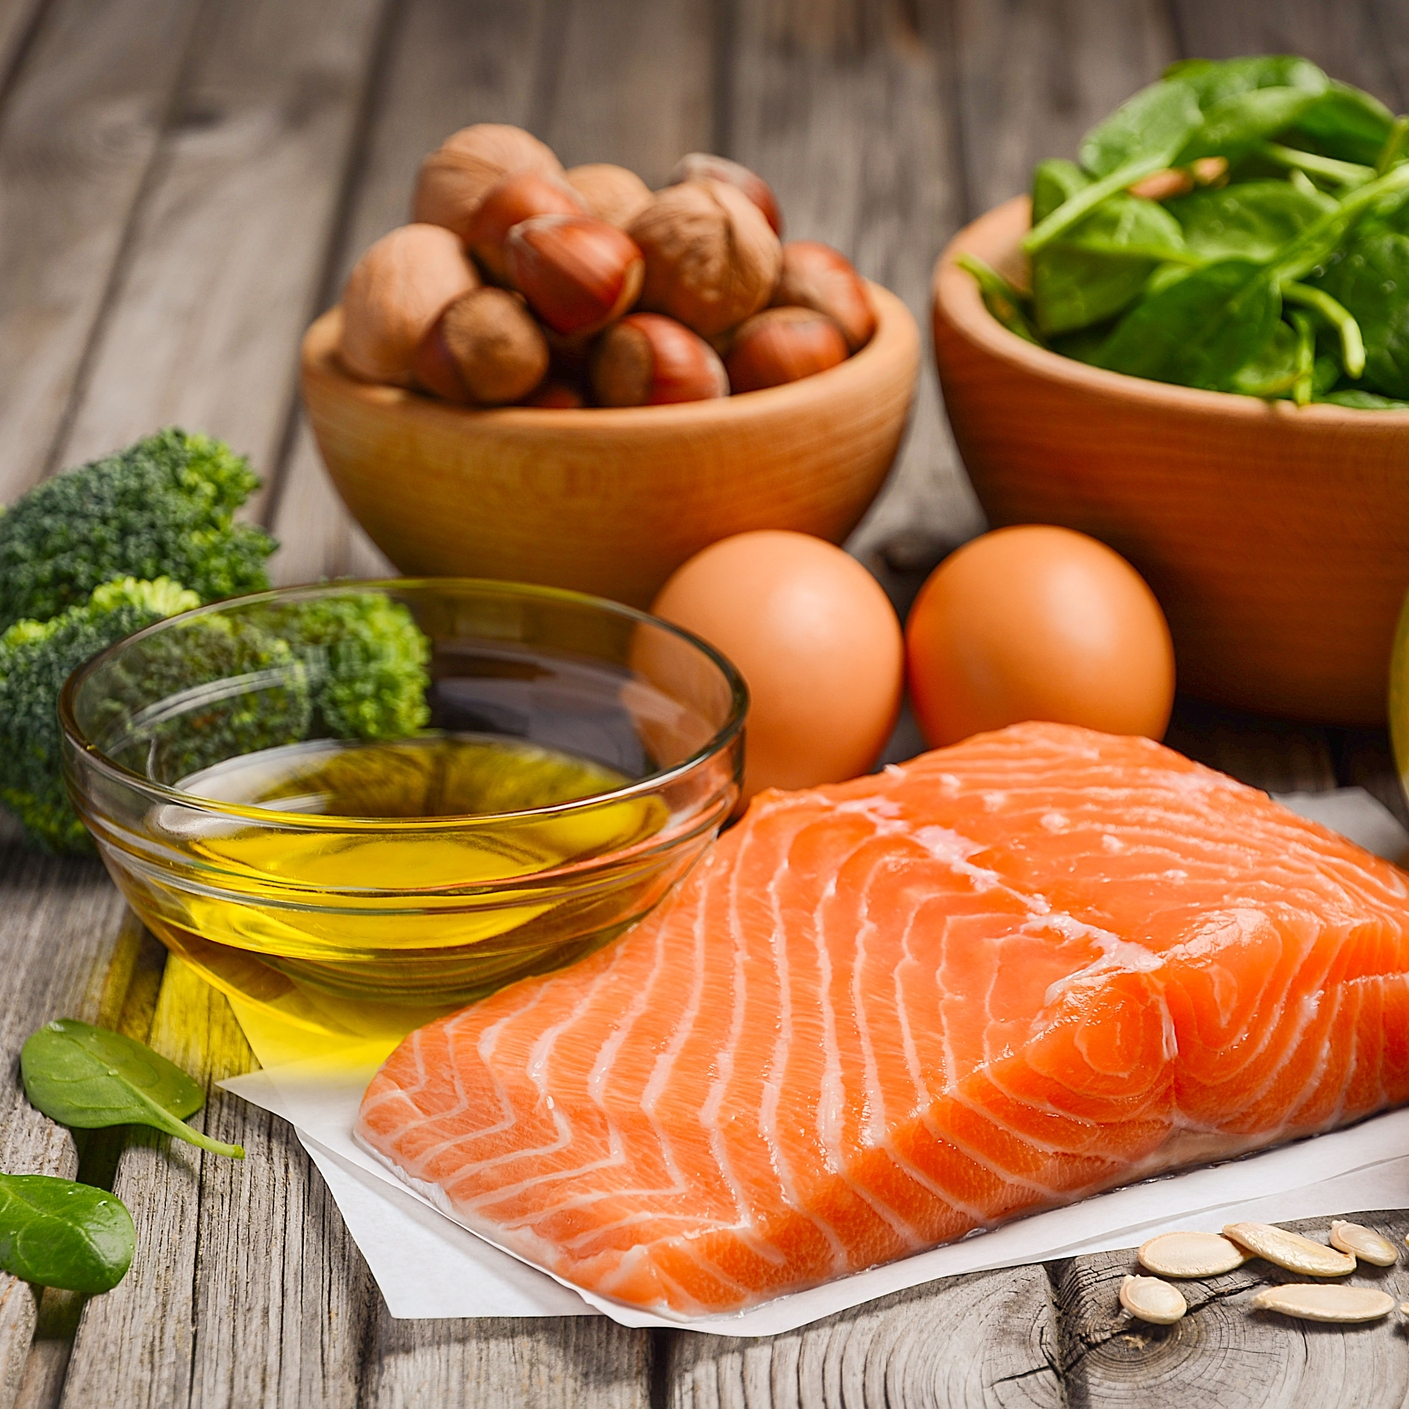 """Photo by JulijaDmitrijeva/iStock / Getty Images  Nutrition  """"Exercise in combination with a healthy diet is the cornerstone of treatment for people with fat disorders"""" says Dr. Karen Herbst."""